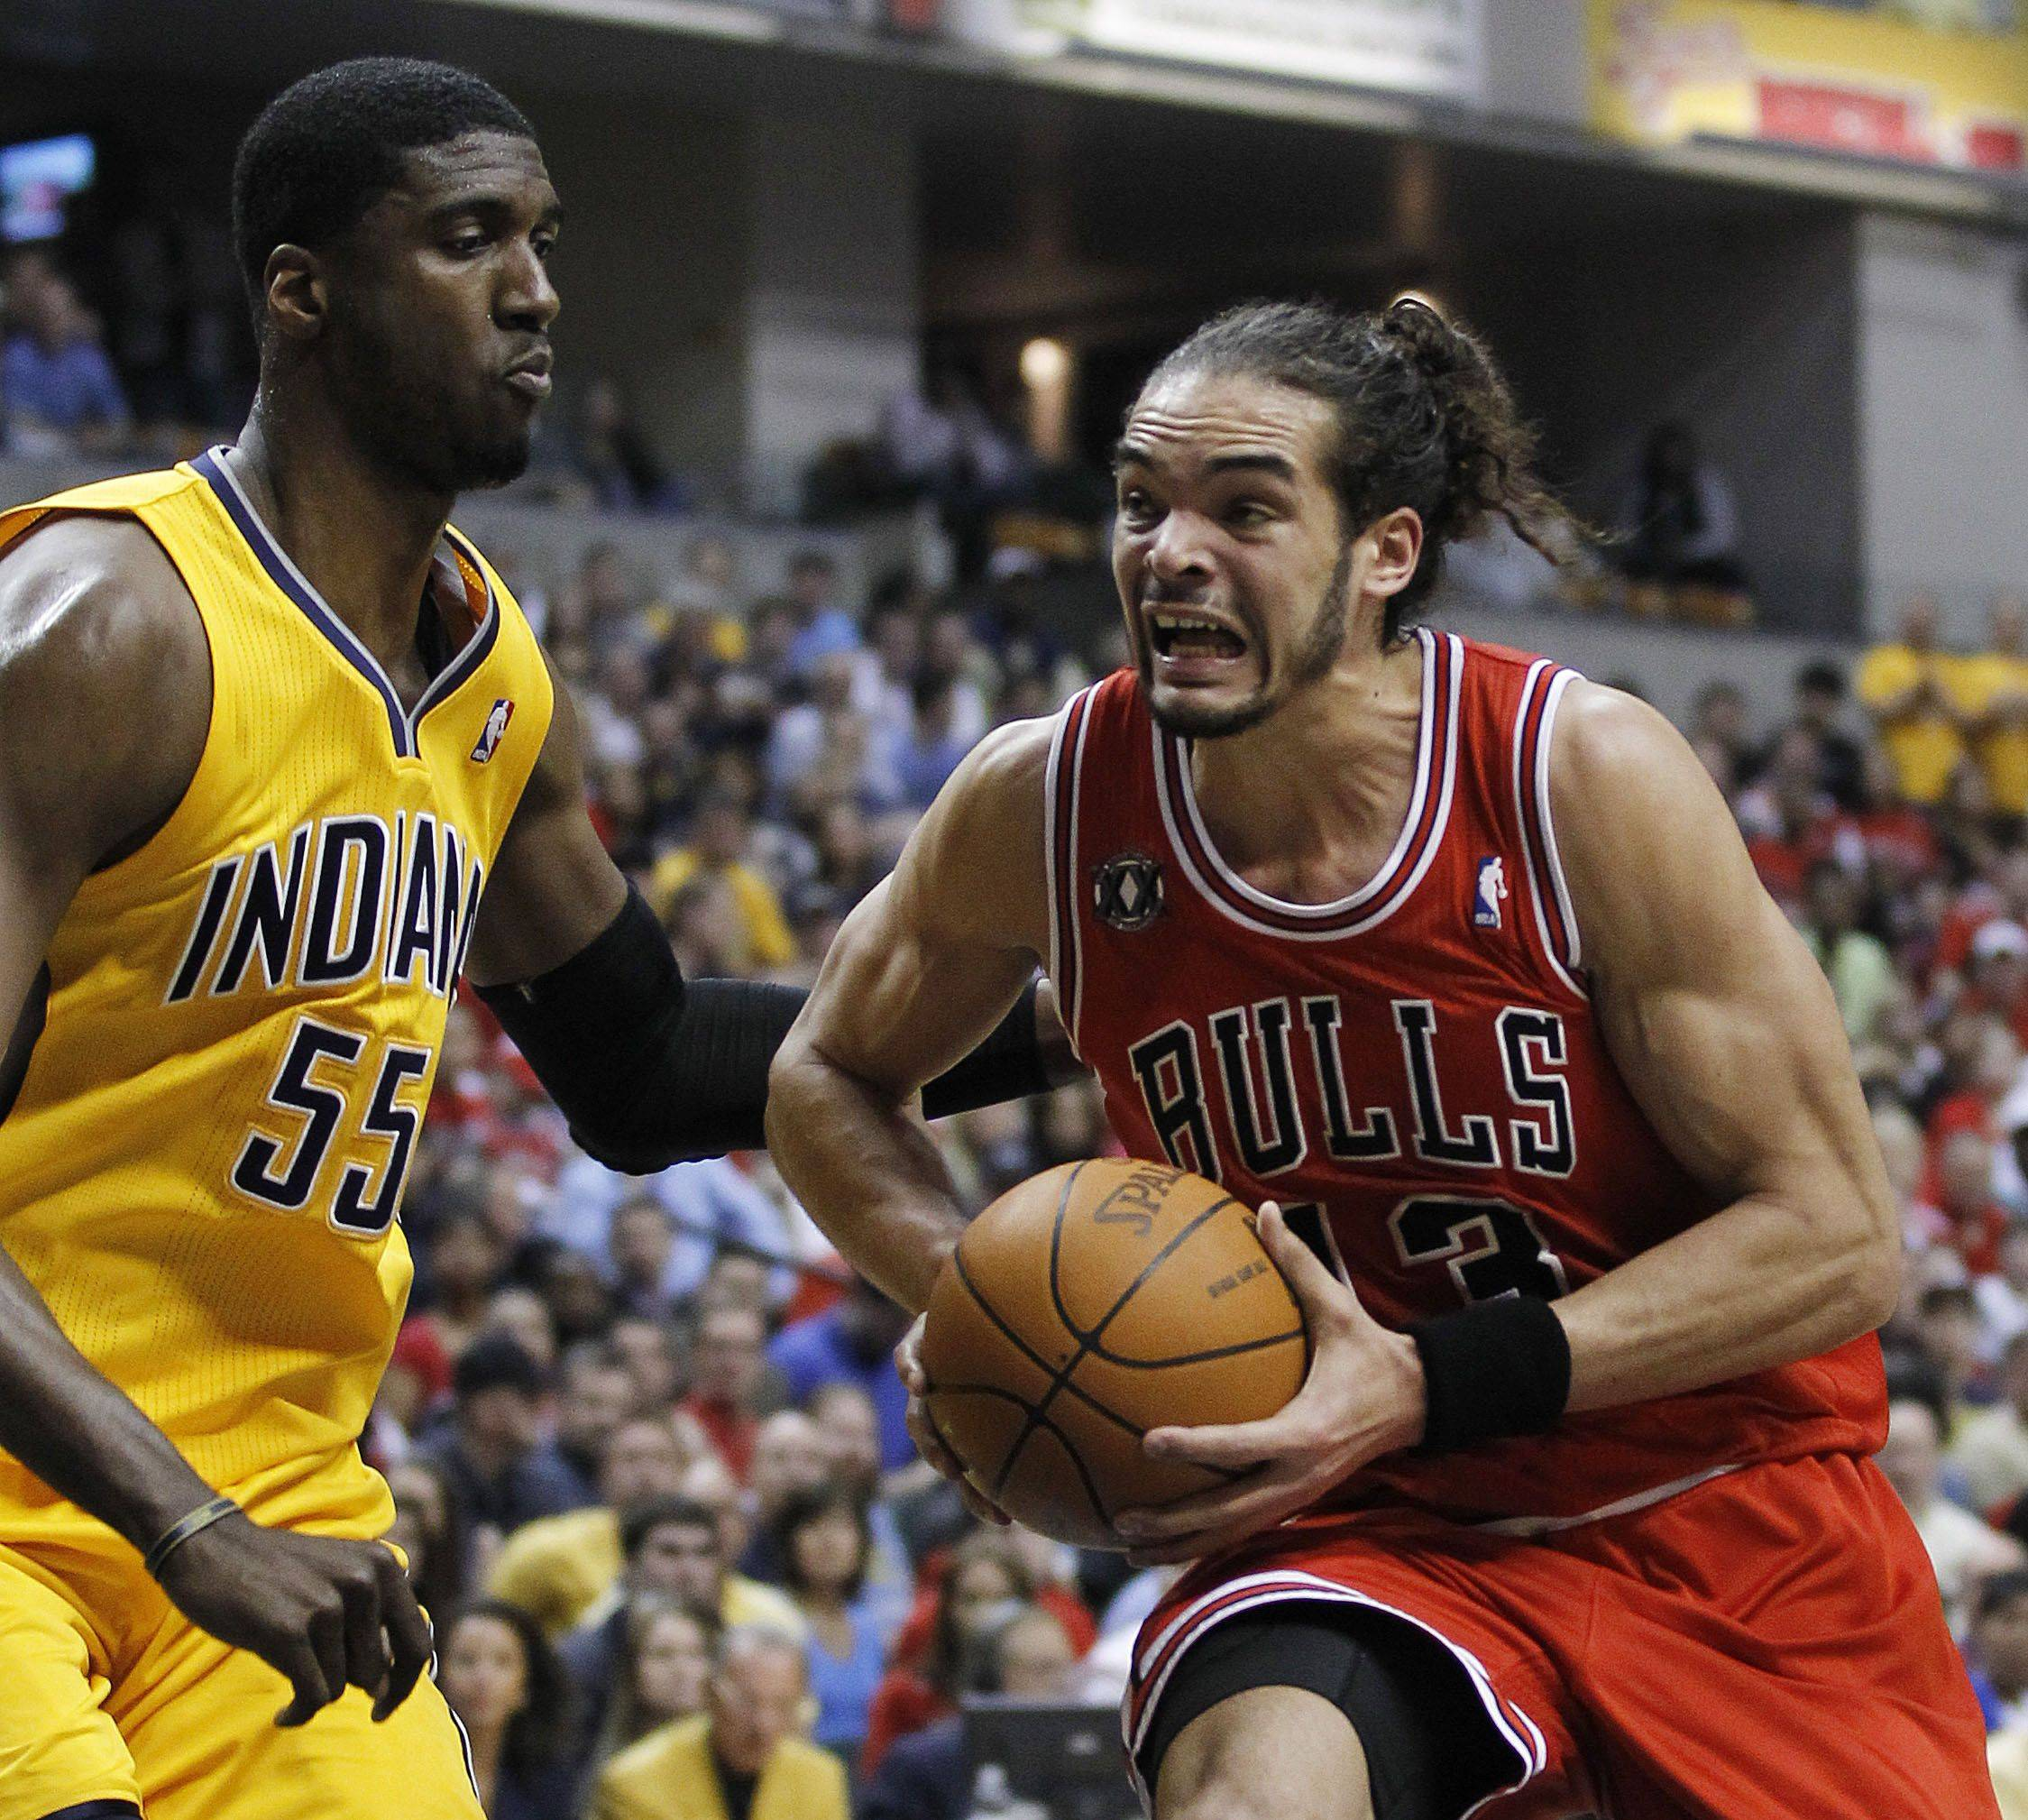 Chicago Bulls' Joakim Noah, right, drives to the basket against Indiana Pacers' Roy Hibbert during the first half of Game 4 of a first-round NBA basketball series in Indianapolis, Saturday, April 23, 2011.